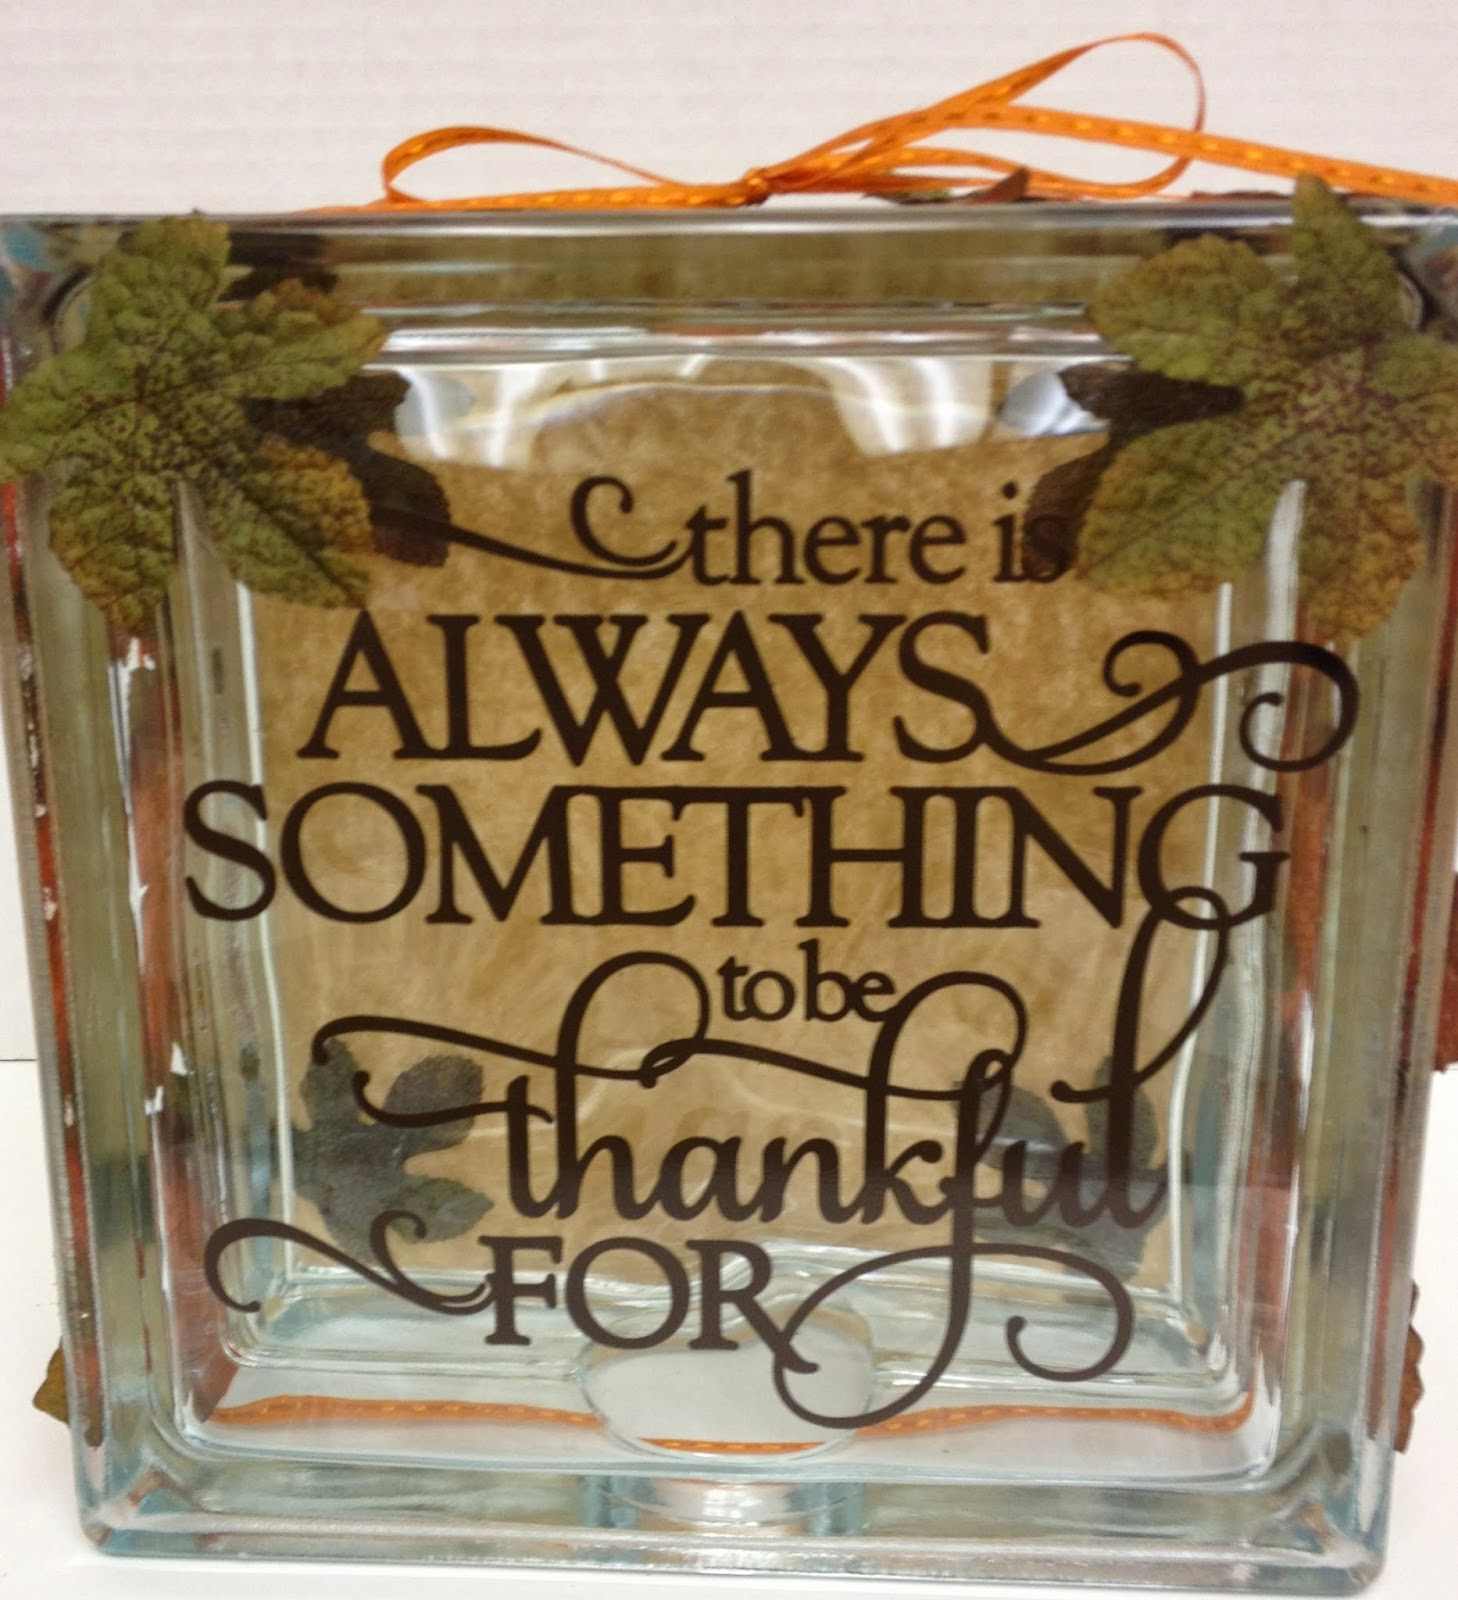 Glass block crafts projects - Glass Block Crafts Projects I Truly Can Not Get Enough Of These Glass Block Projects